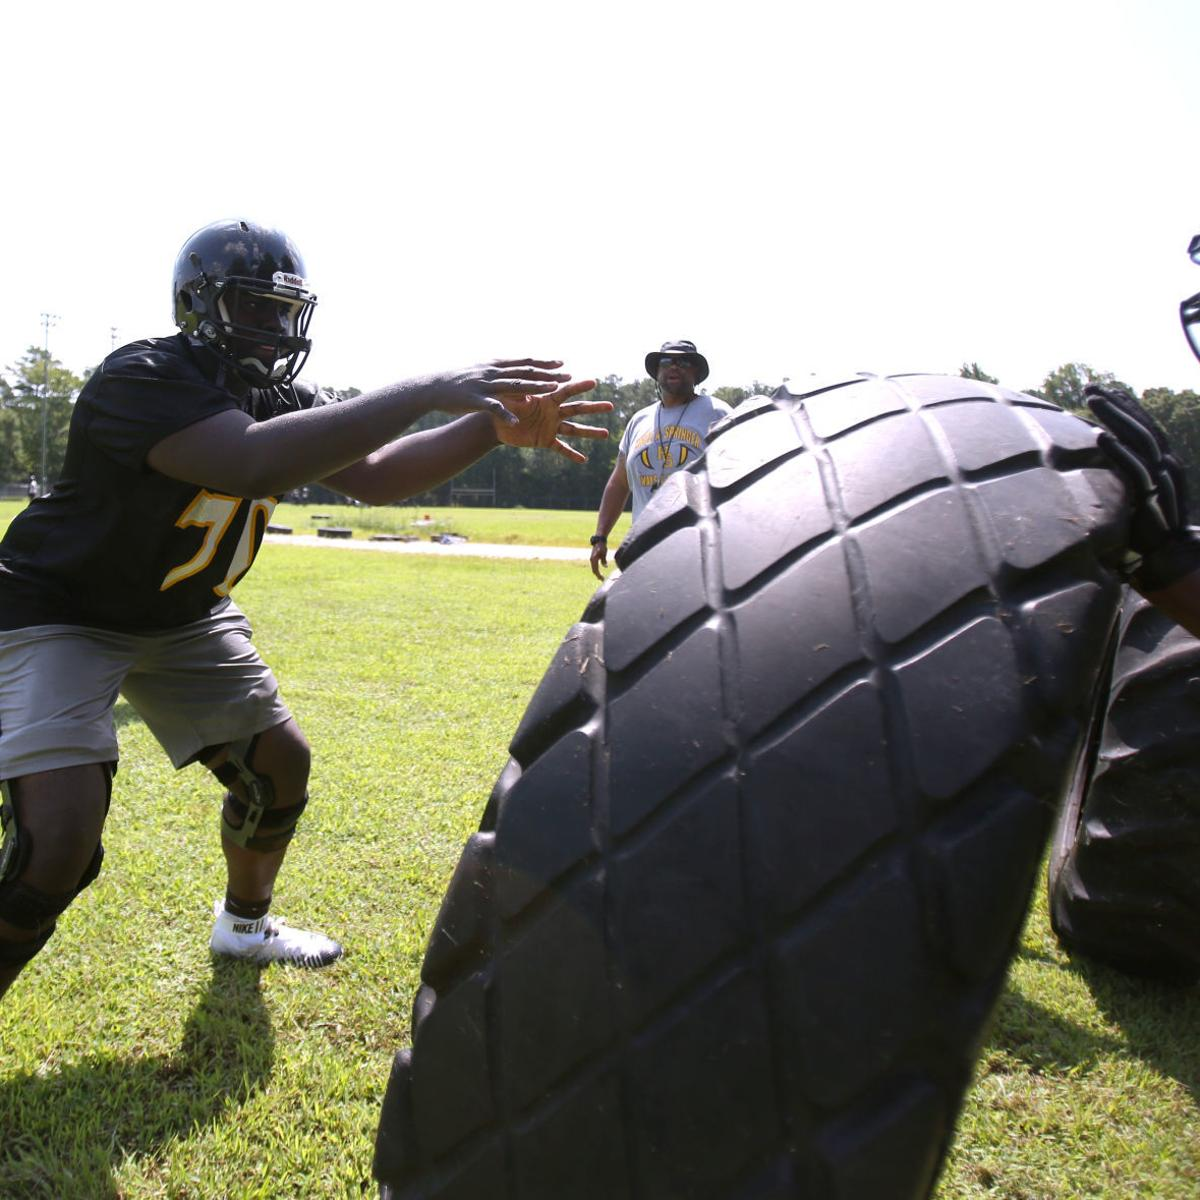 As offseason practice is targeted for elimination, coaches